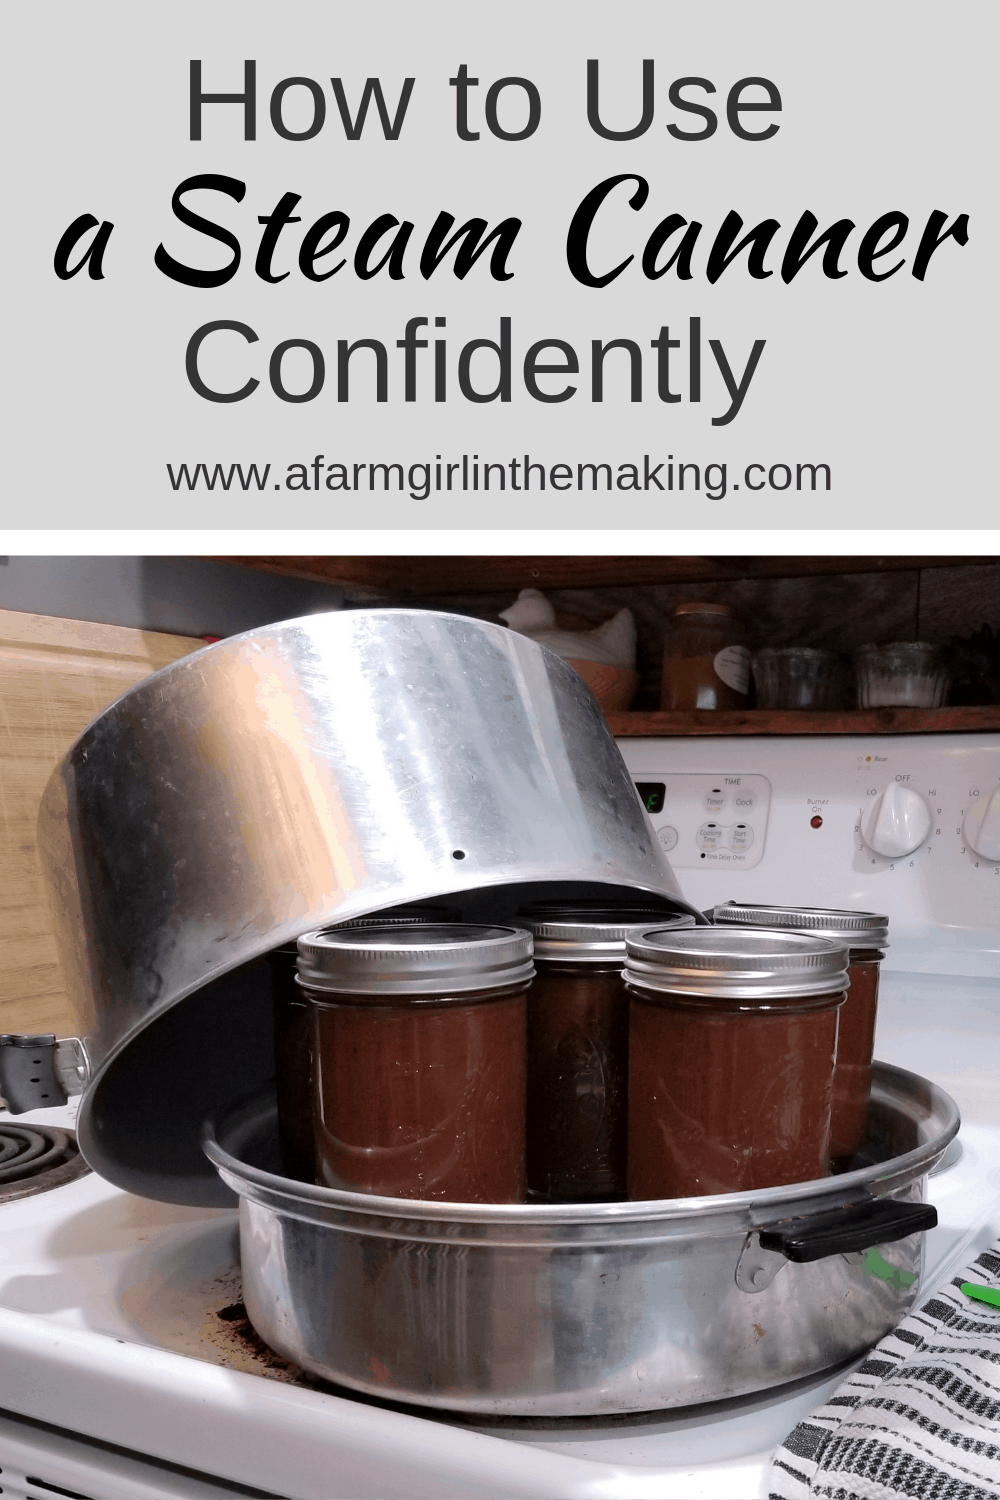 Steam Canner | How to Use One Confidently